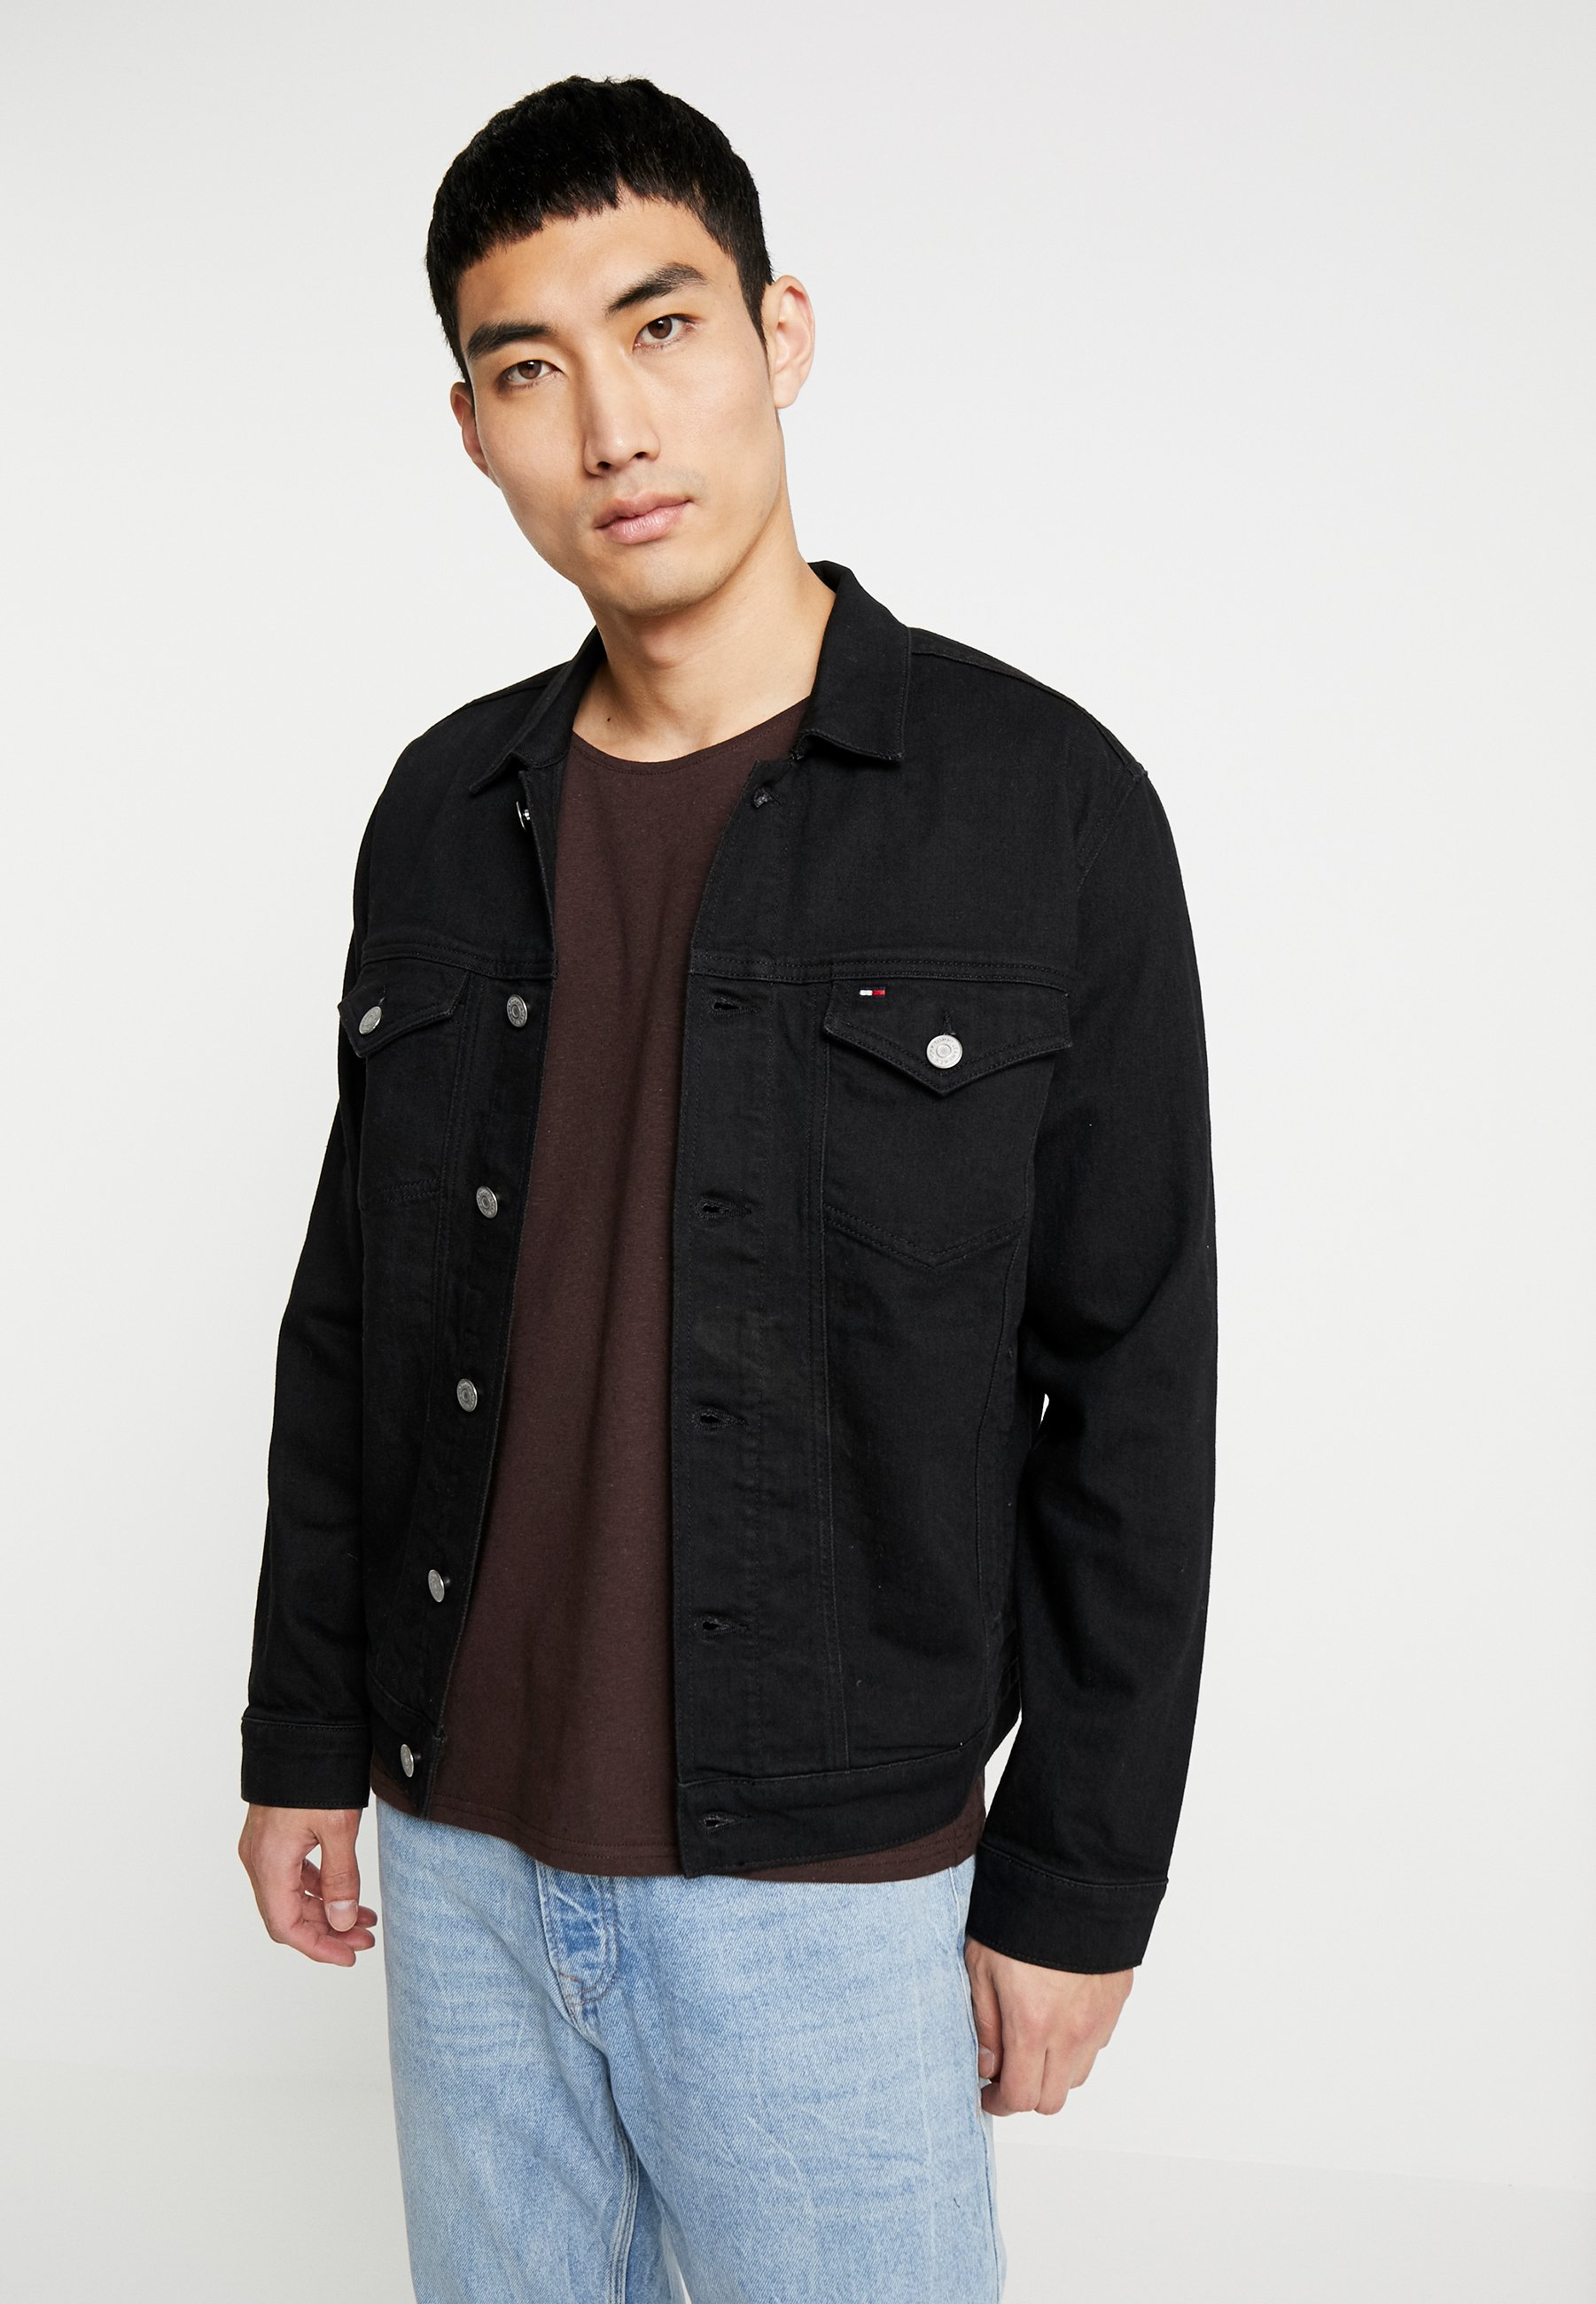 Tommy En Jean Regular Jeans Denim TruckerVeste Black DHEI2W9